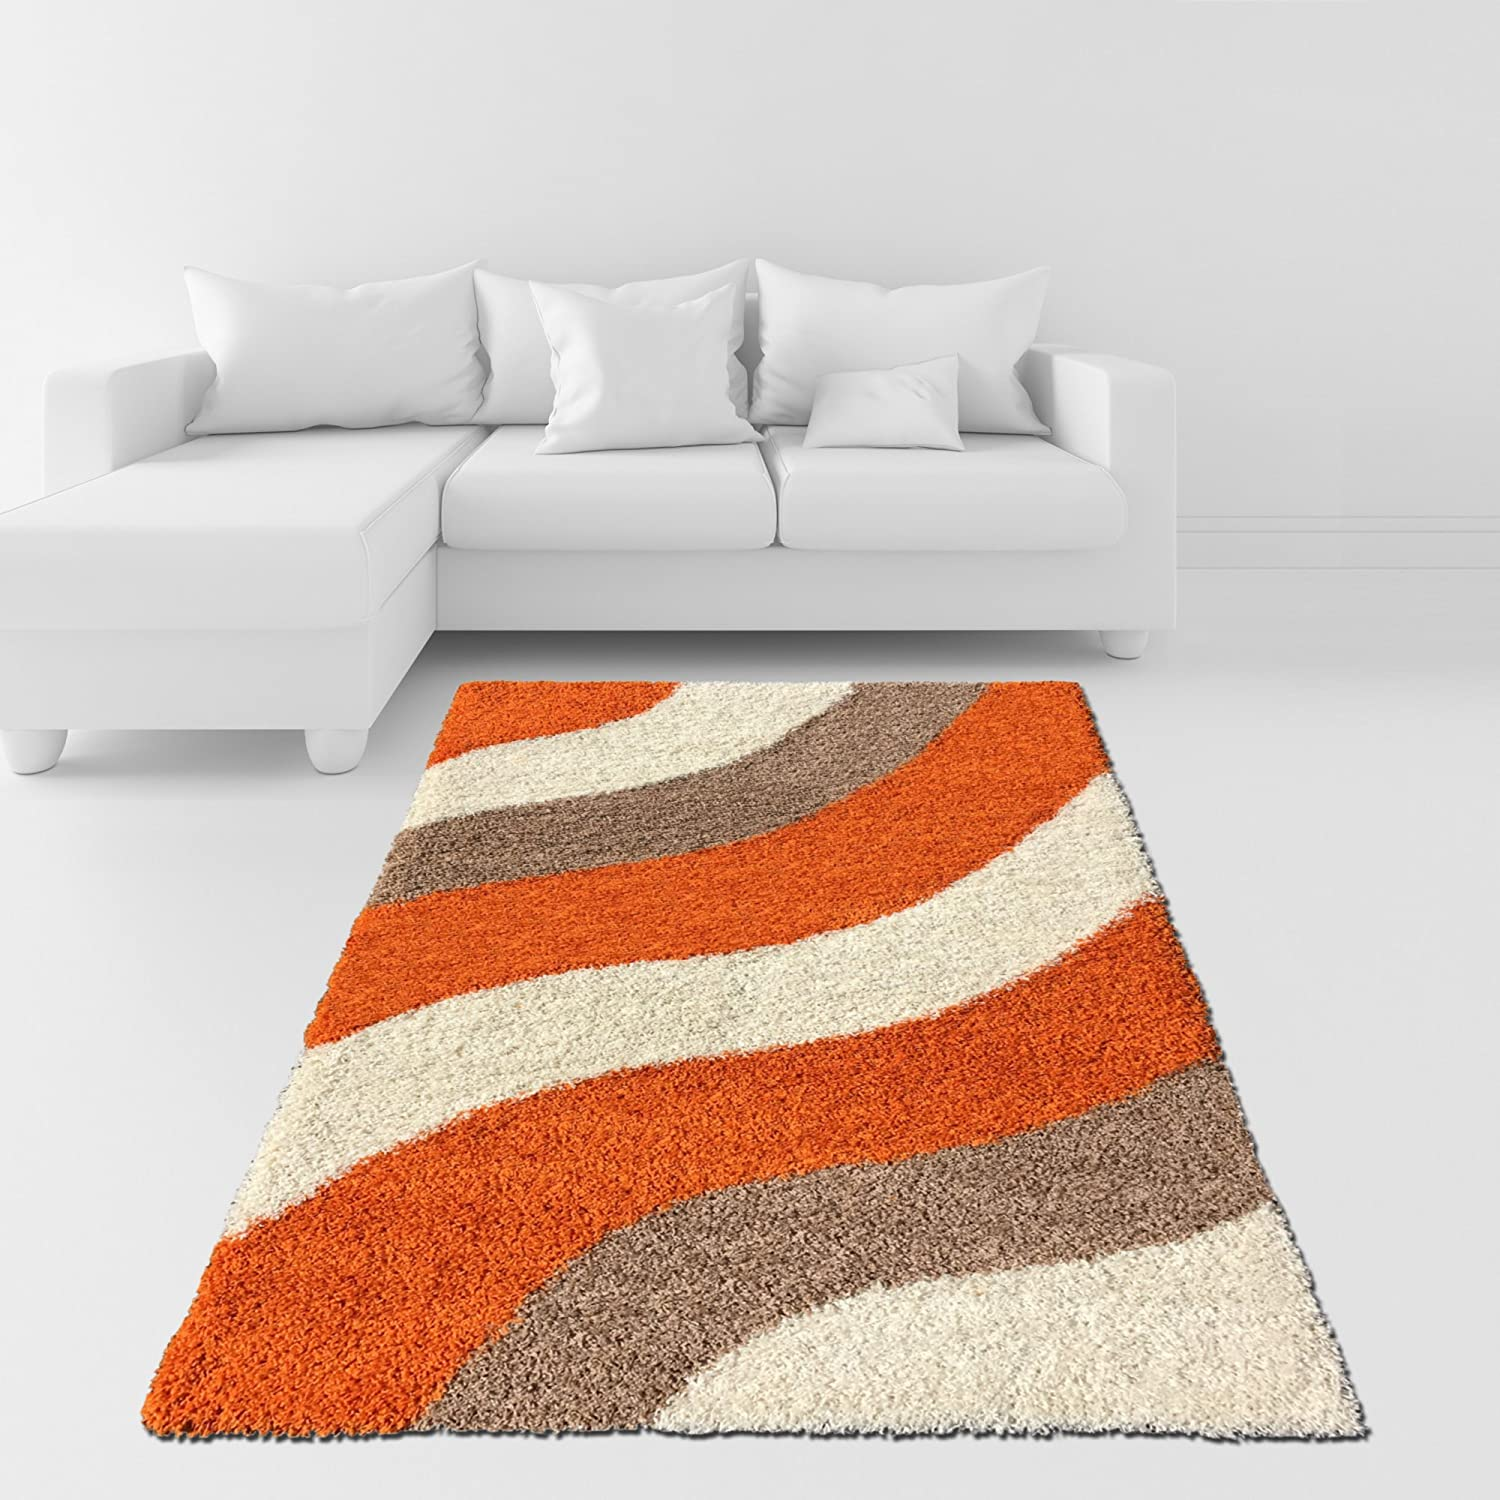 Grey Striped Rug Hays Grey Striped Rug By Asiatic